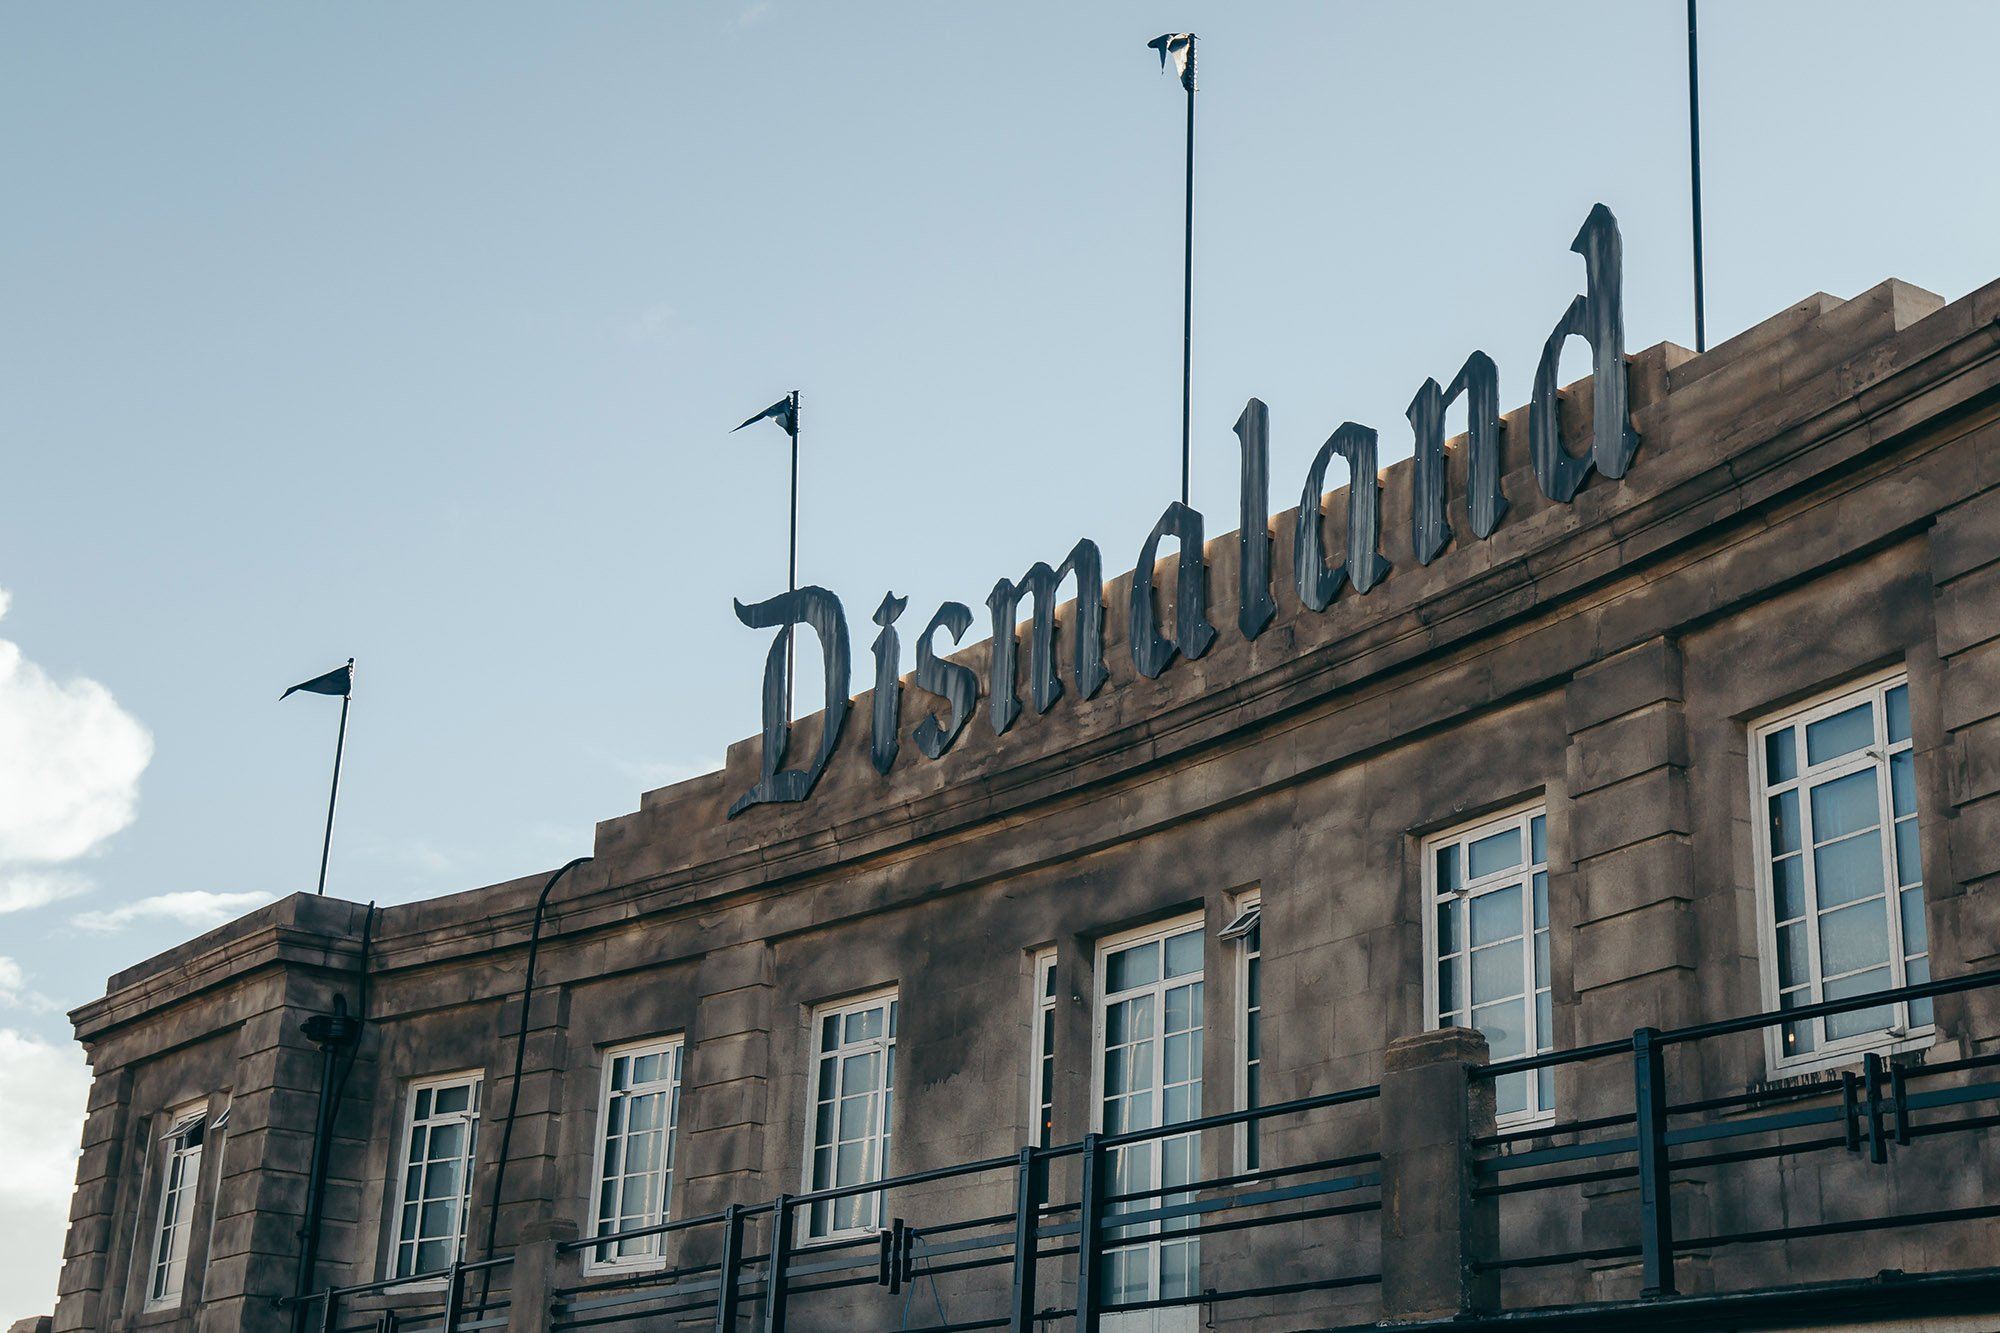 Banksy's Dismaland sign